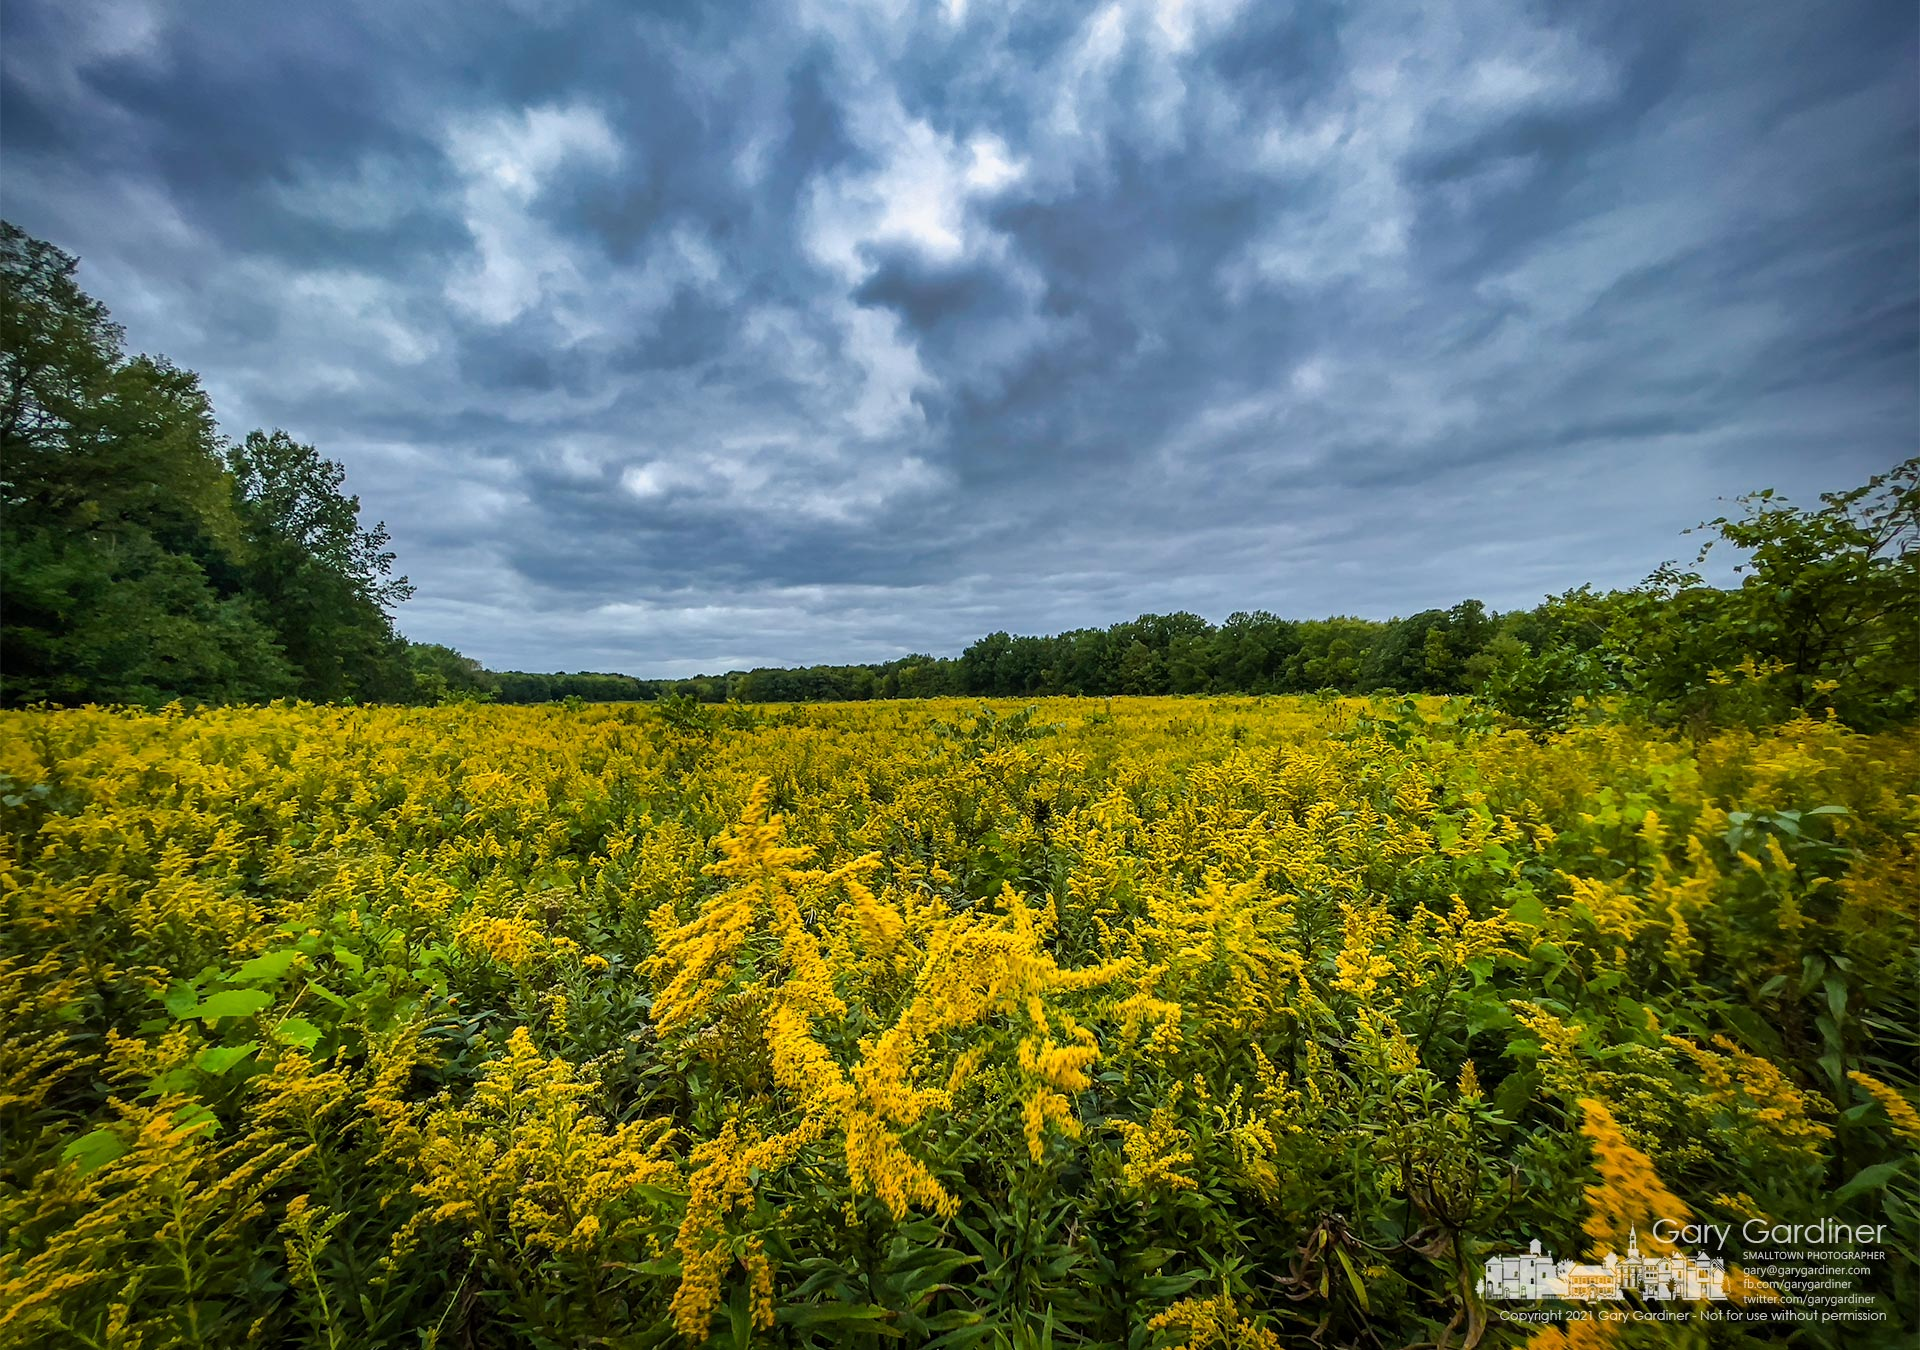 Goldenrod bursts into color under storm clouds blowing over the prairie at the edge of the Edward S. Thomas Nature Preserve in Sharon Woods Metro Park. My Final Photo for Sept. 23, 2021.